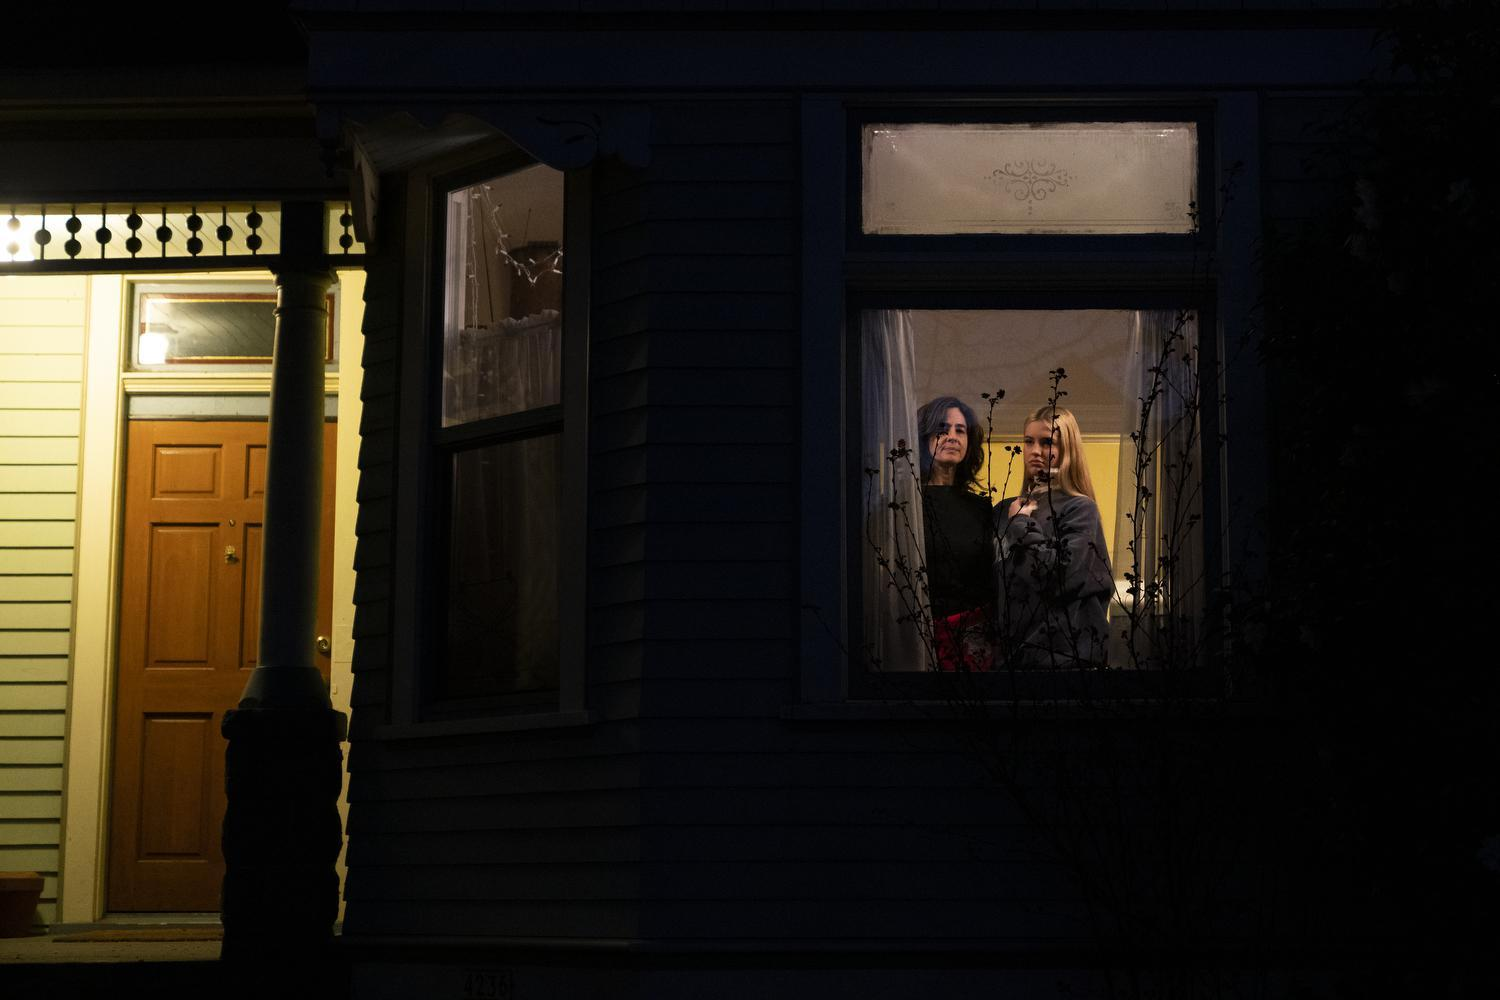 Brynna Sibilla and her daughter Talia in the window of their home in Portland, Ore., March 16, 2020.